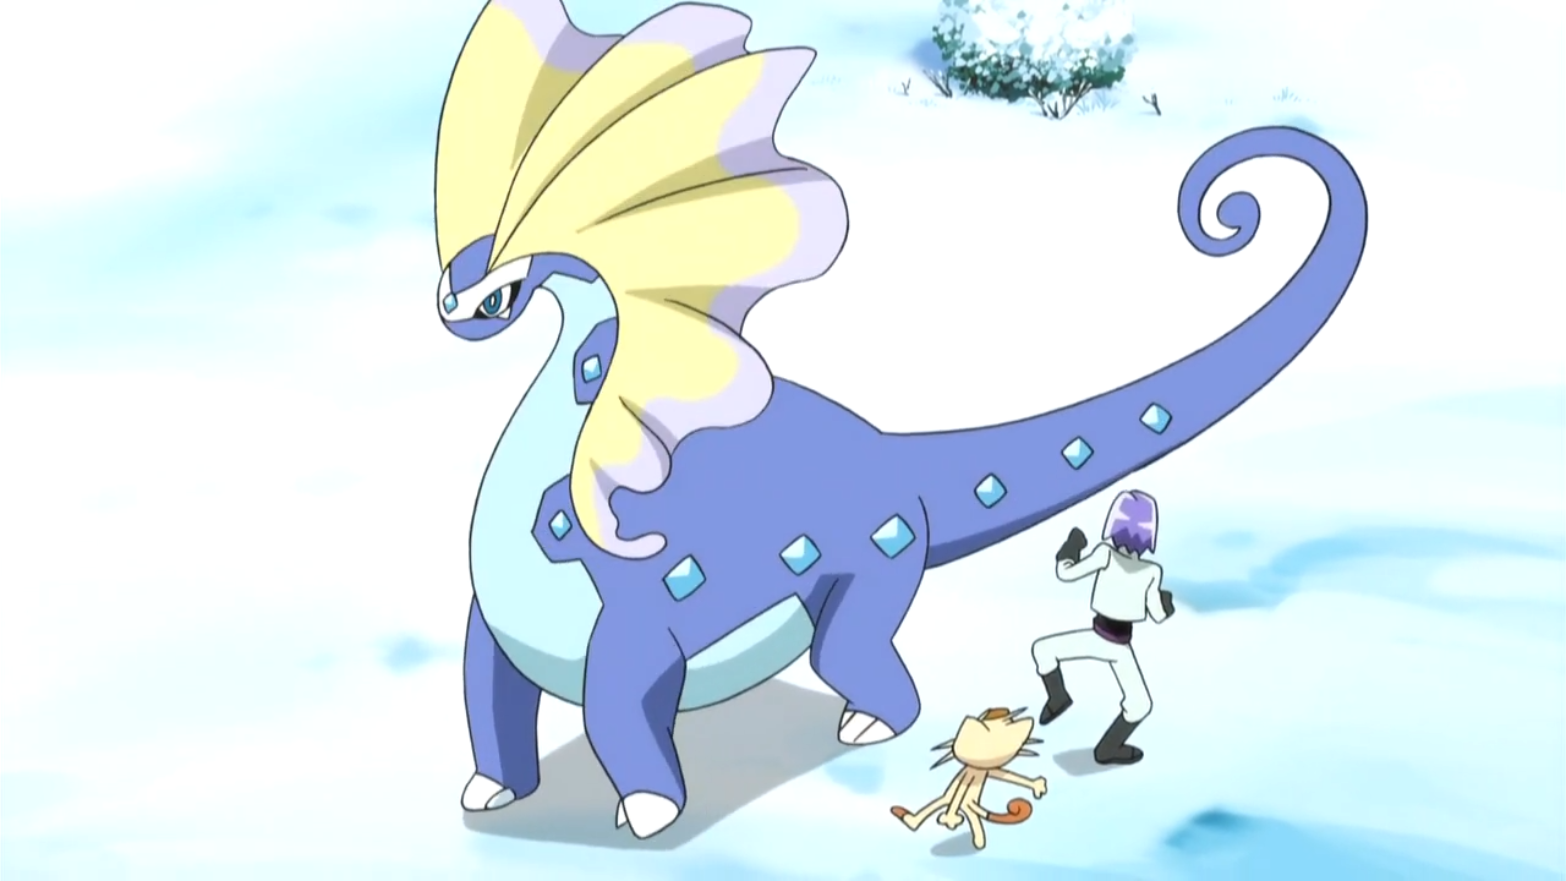 Aurorus was revived from a fossil, along with Amaura. When Amaura was lost, Aurorus went to search after it and defeated Team Rocket upon finding Amaura.